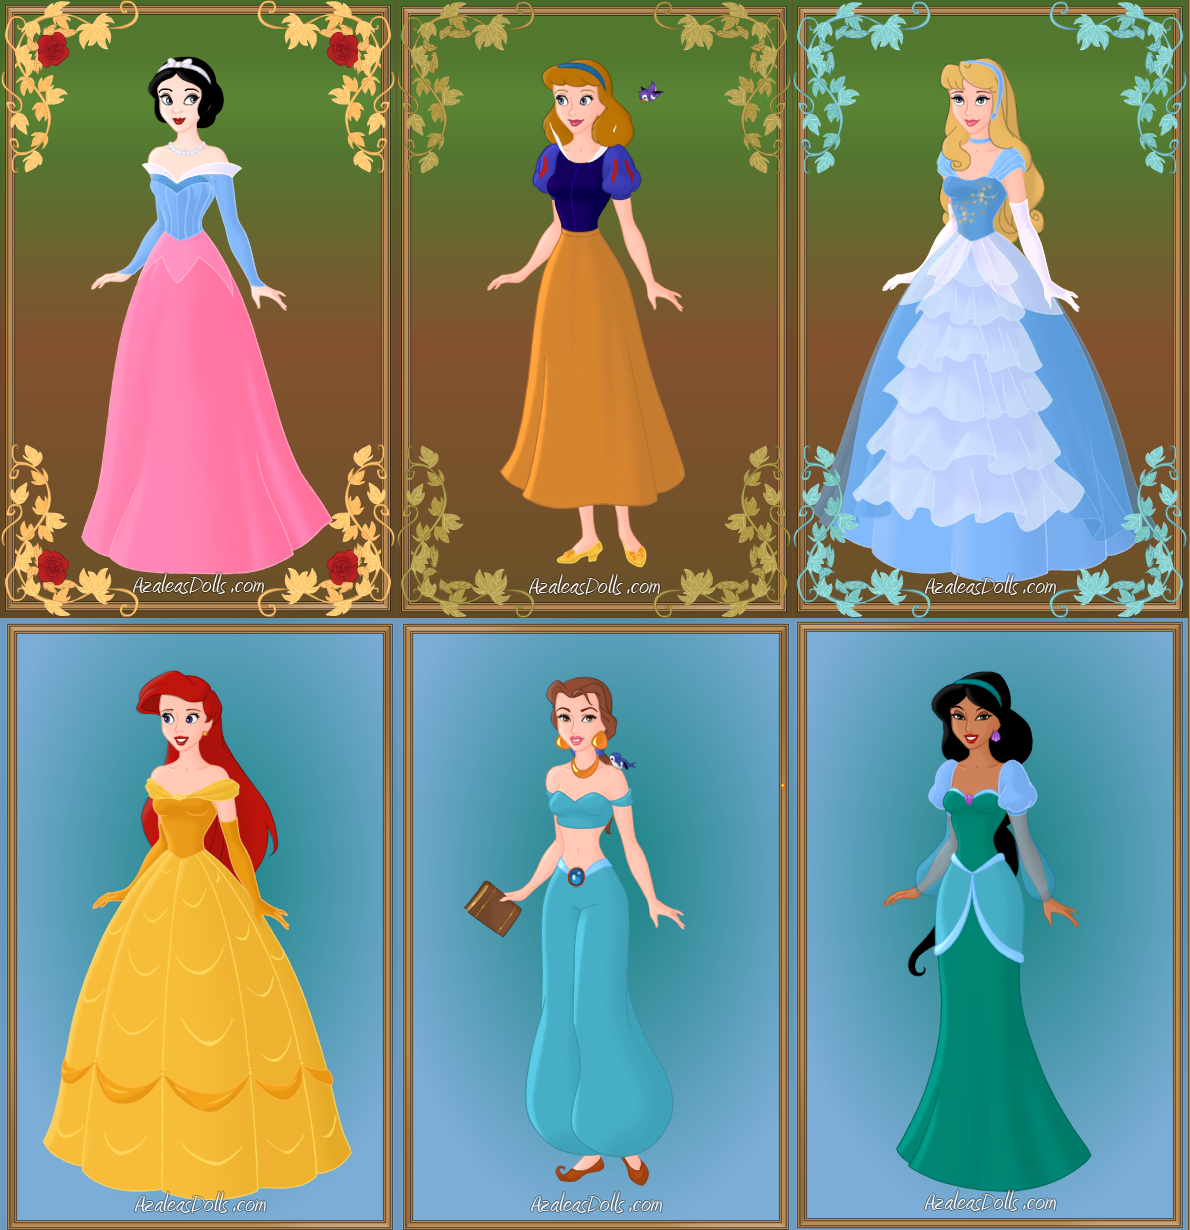 Disney Princess Outfit Swaps 1 by monkeypizzasonic on DeviantArt